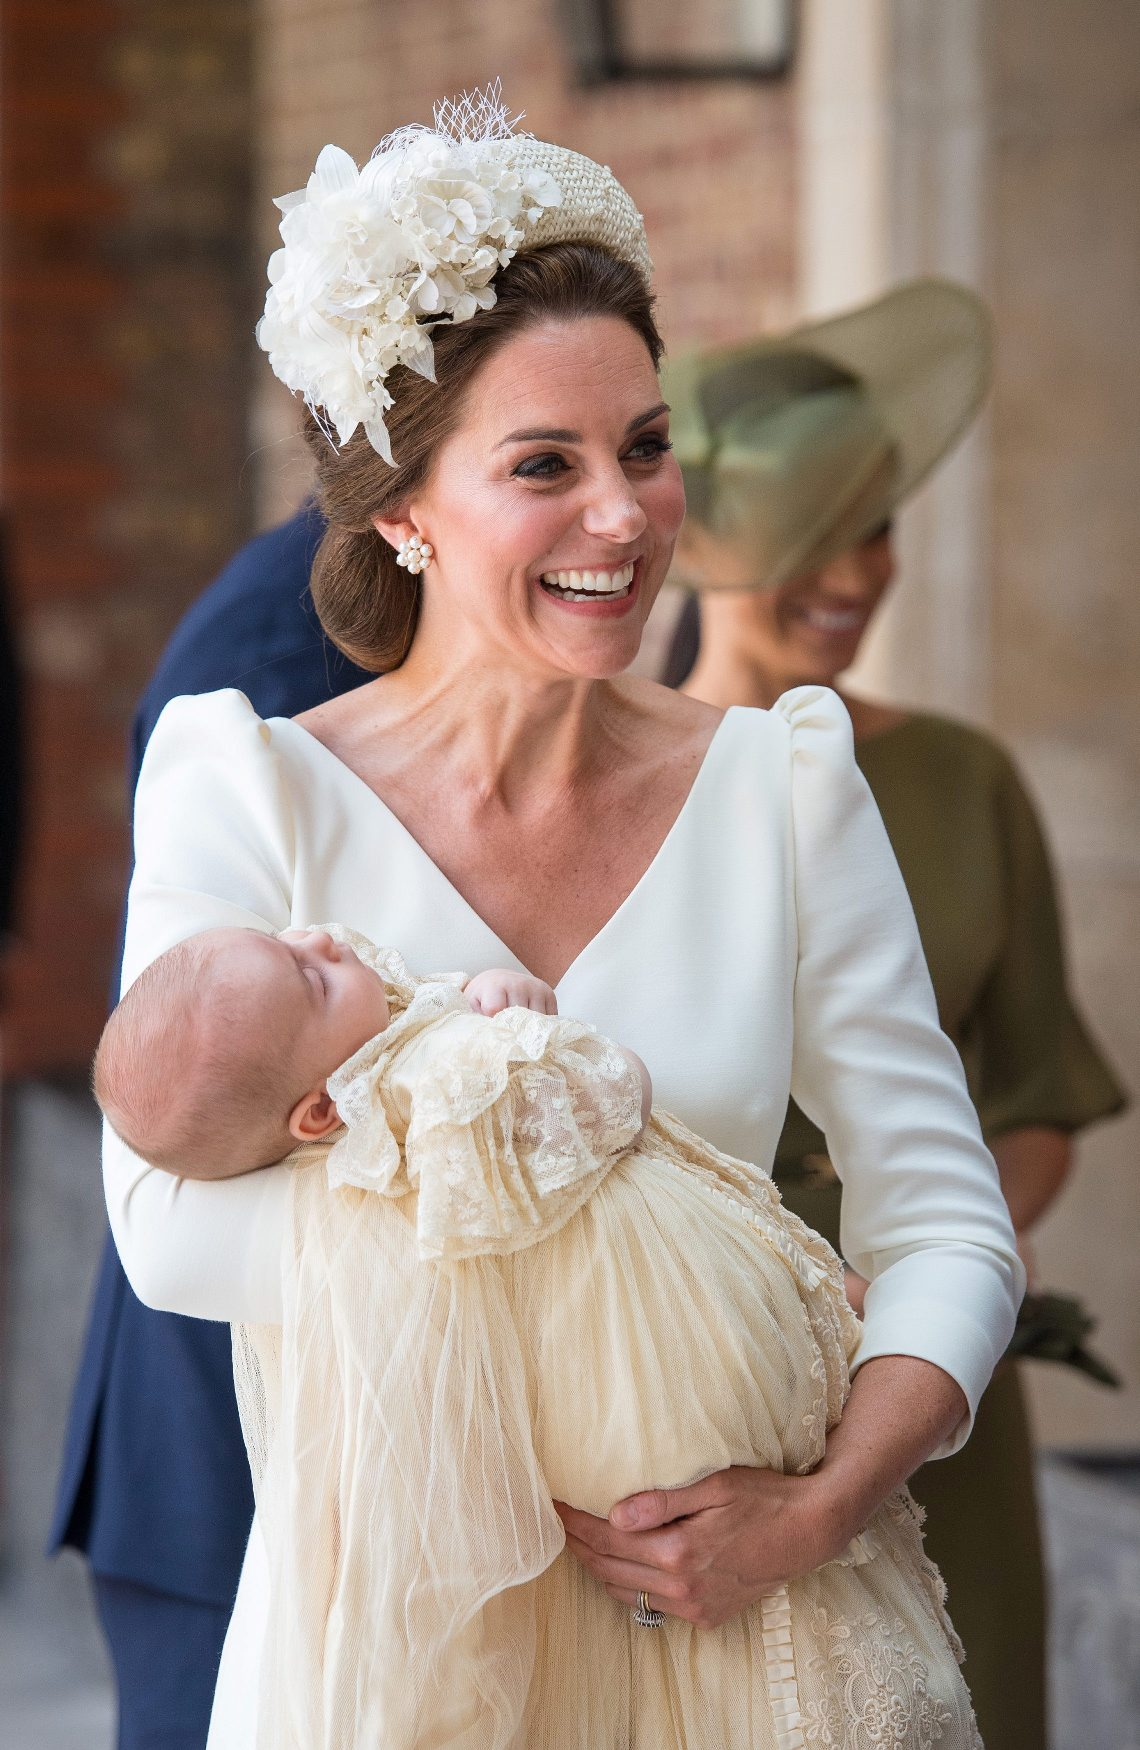 Britain's Catherine, the Duchess of Cambridge, carries Prince Louis as they arrive for his christening service at the Chapel Royal, St James's Palace, London, Britain, July 9, 2018. Dominic Lipinski/Pool via REUTERS